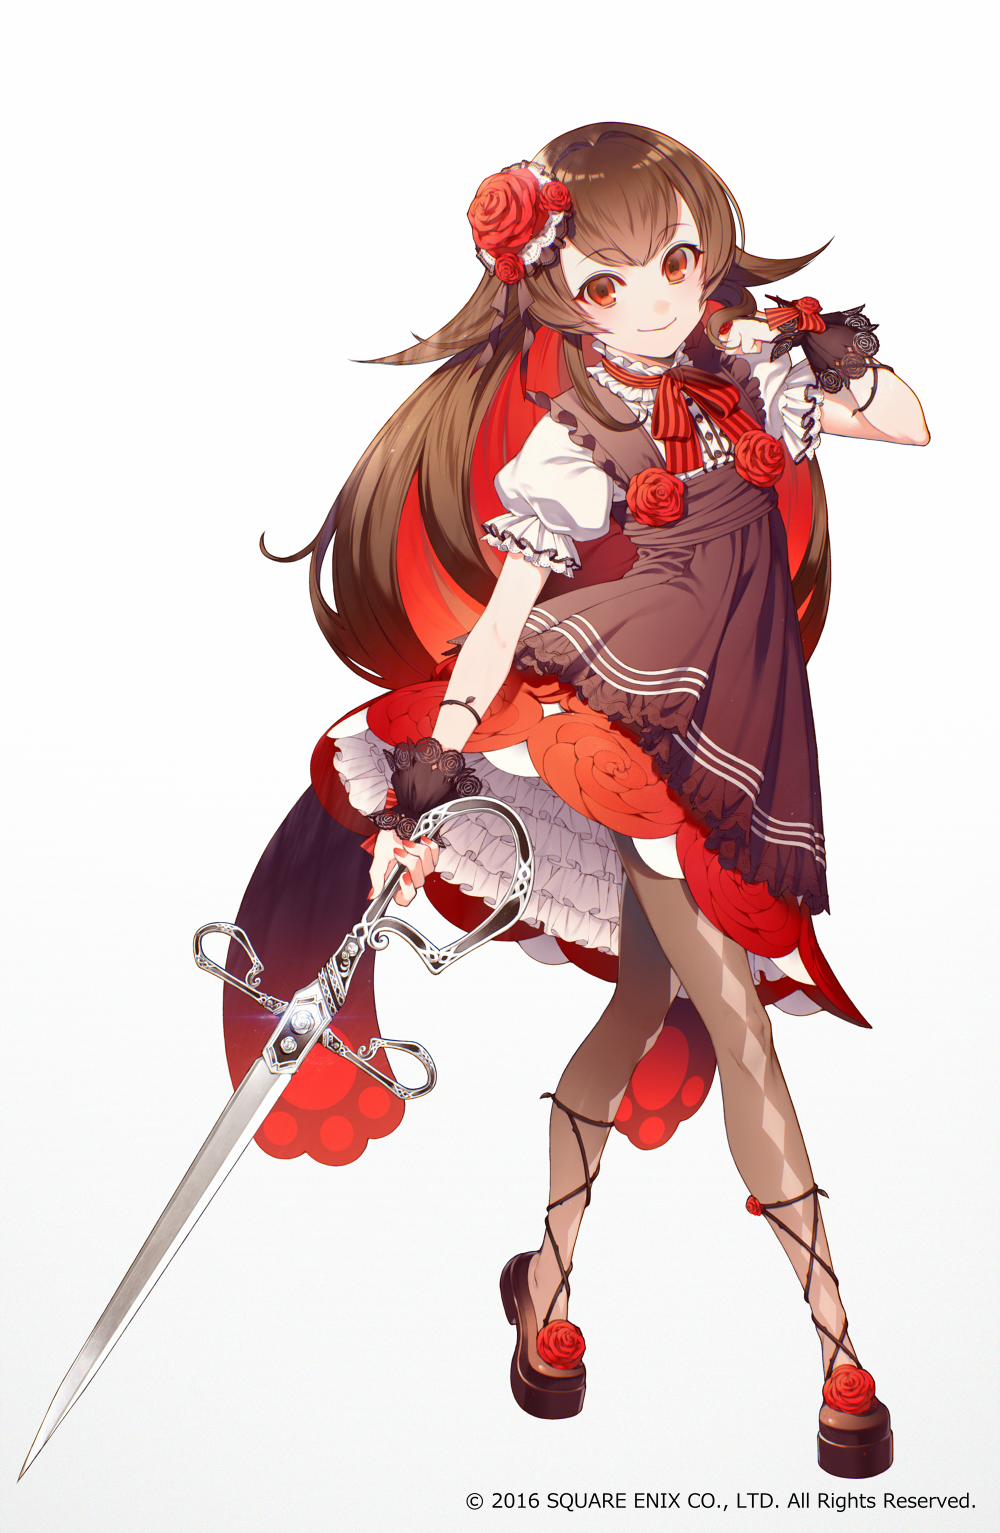 1girl akabara_(grimms_notes) apron argyle argyle_legwear brown_hair brown_legwear brown_shoes buttons commentary_request dress flower frilled_dress frilled_sleeves frills full_body grey_background grimms_notes hair_intakes hair_ornament hand_up highres holding holding_sword holding_weapon long_hair multicolored_hair nail_polish neck_ribbon official_art pantyhose puffy_short_sleeves puffy_sleeves red_dress red_eyes red_nails red_rose redhead ribbon rose rose_hair_ornament see-through shirotaka_(5choume) shoes short_sleeves sidelocks simple_background smile solo standing striped sword thorns two-tone_hair weapon wrist_cuffs